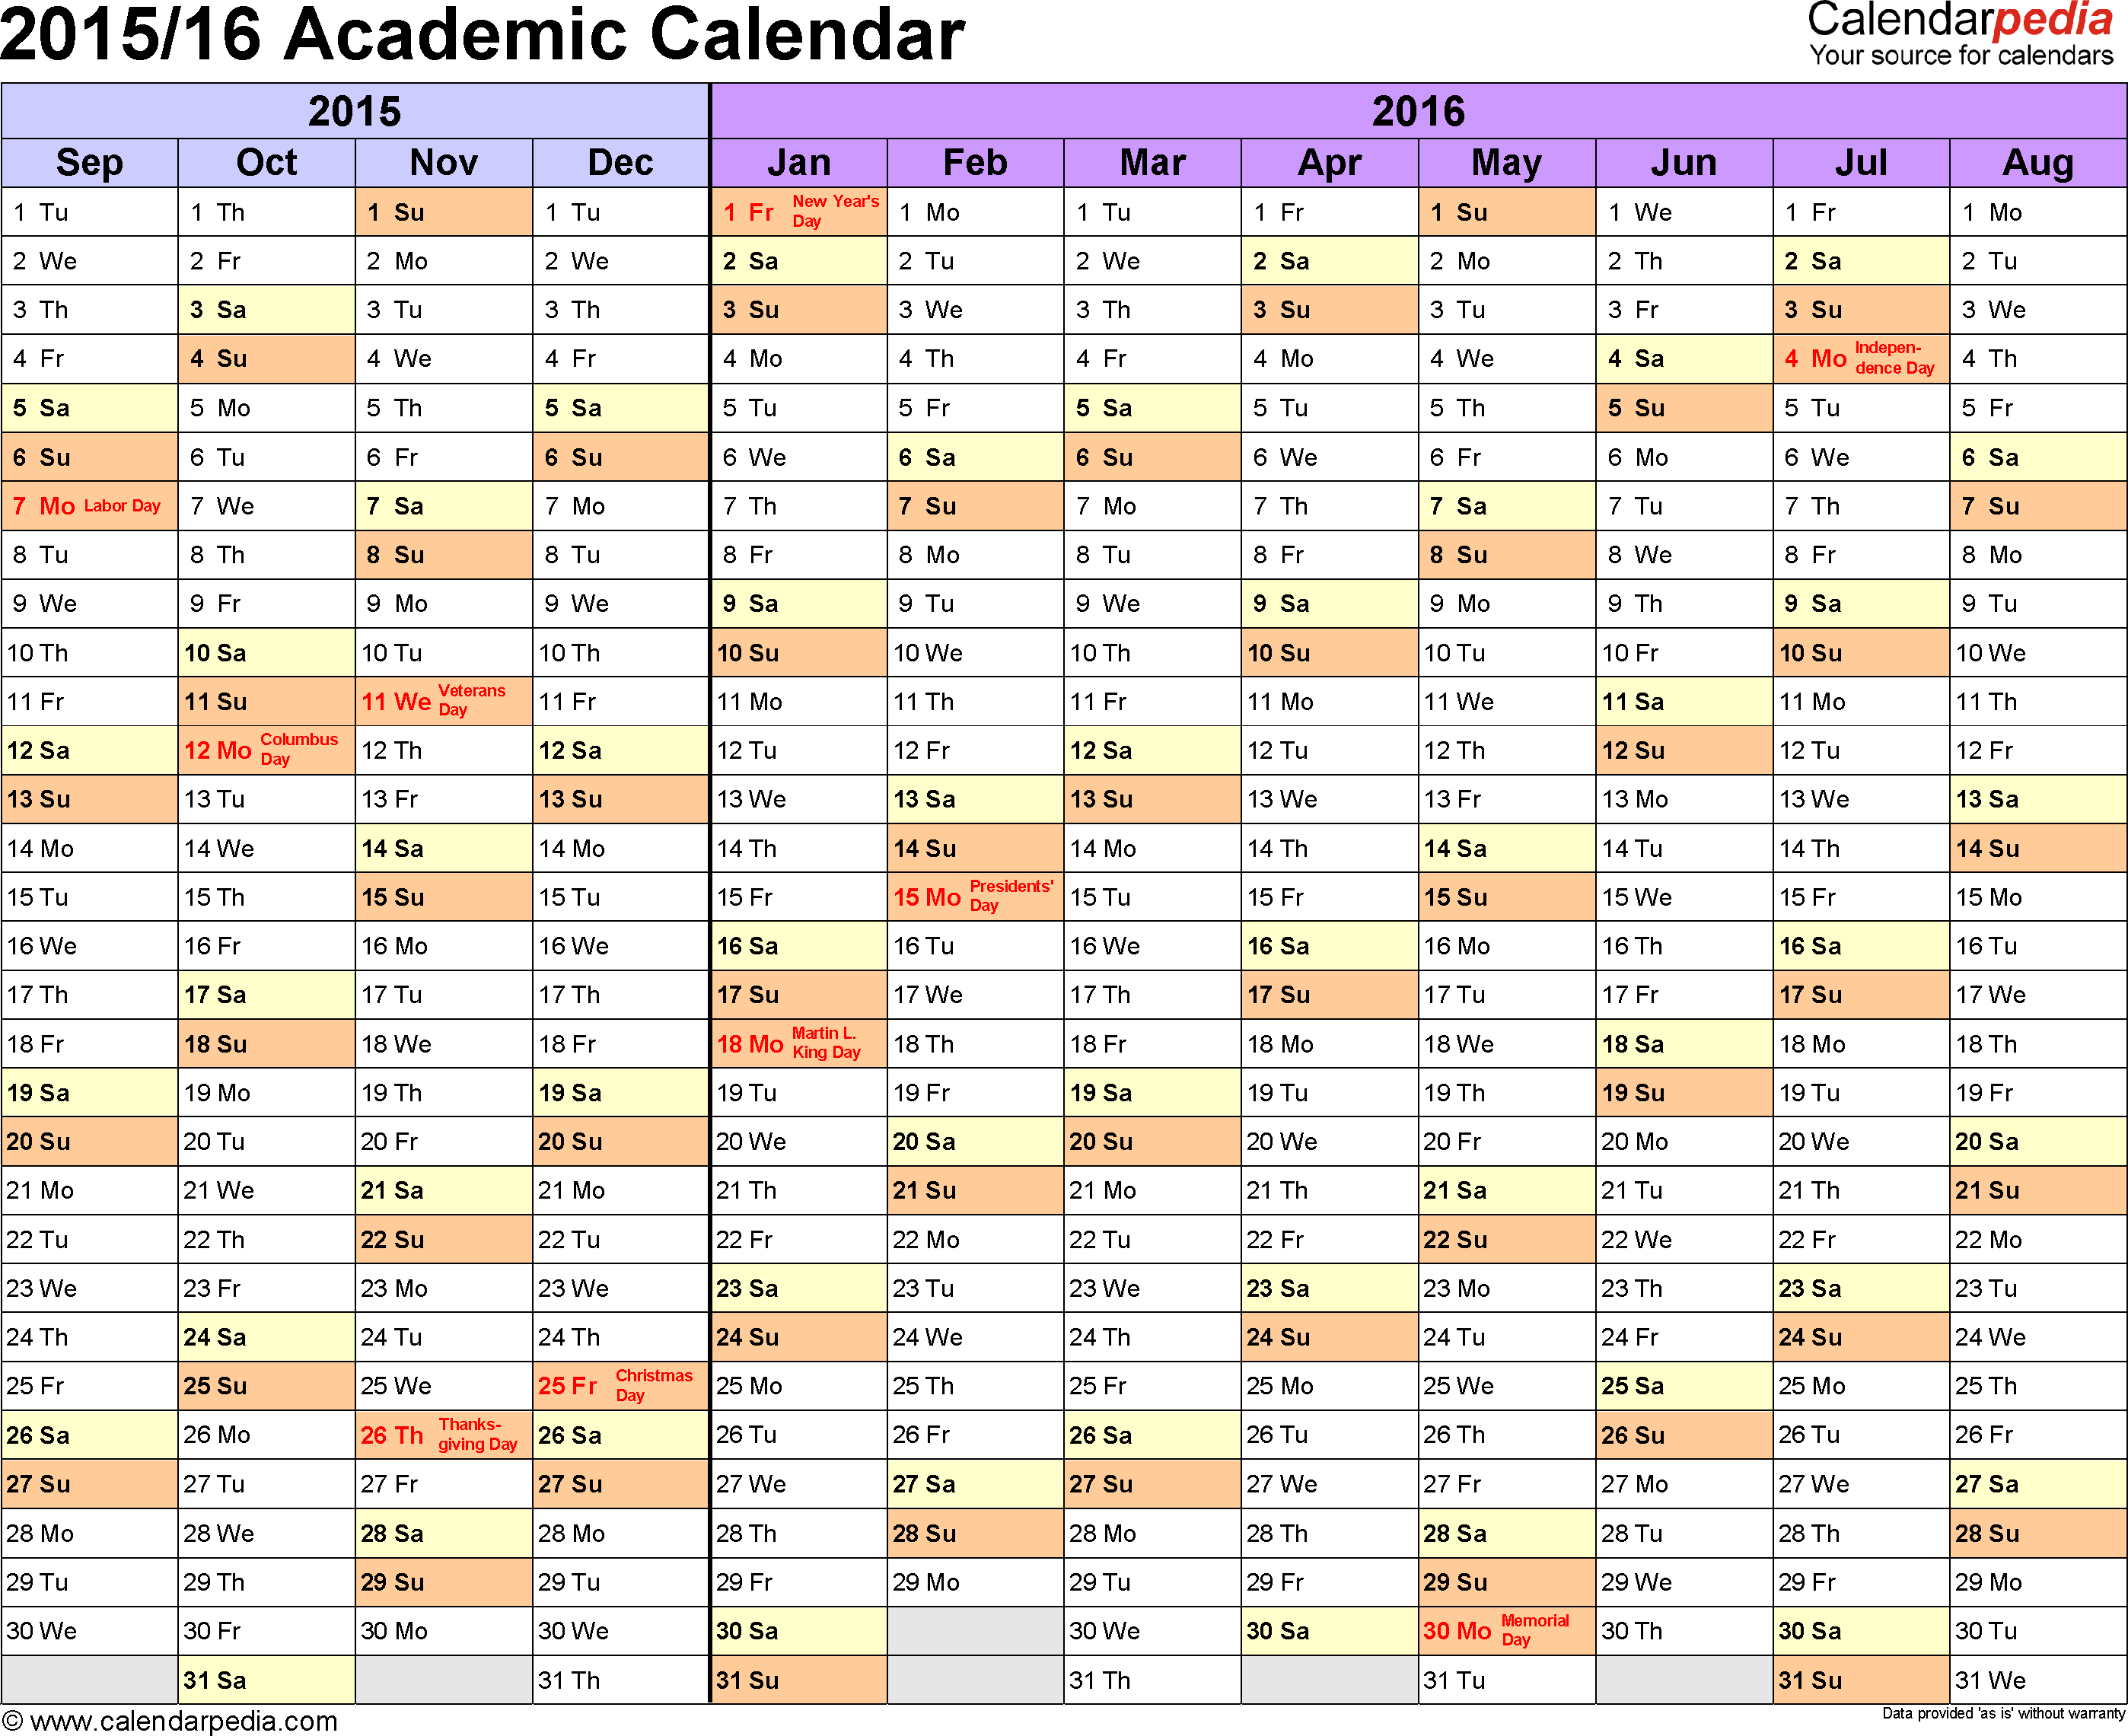 Download Template 1: Academic calendar 2015/16 for Microsoft Word (.docx file), landscape, 1 page